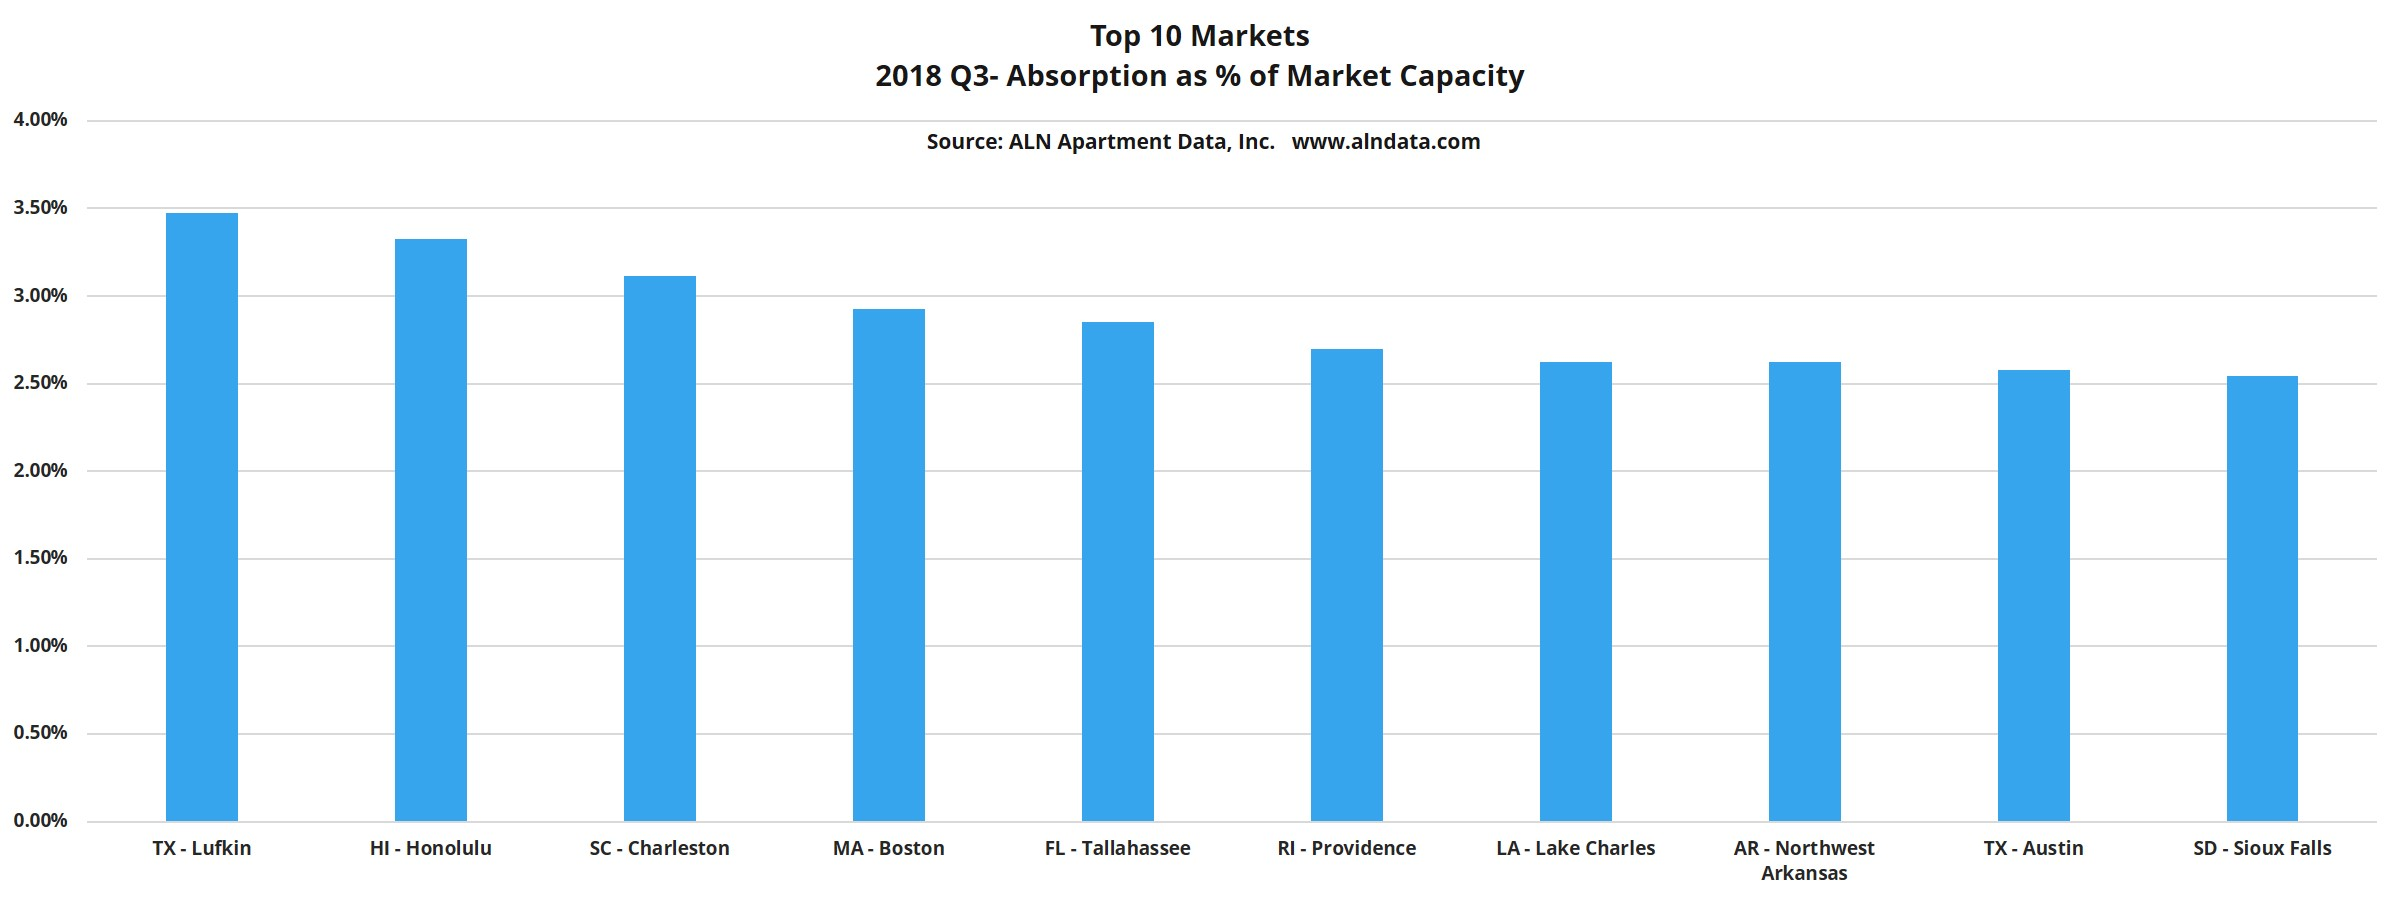 Top 10 Markets 2018 Quarter 3- Absorption as % of Market Capacity